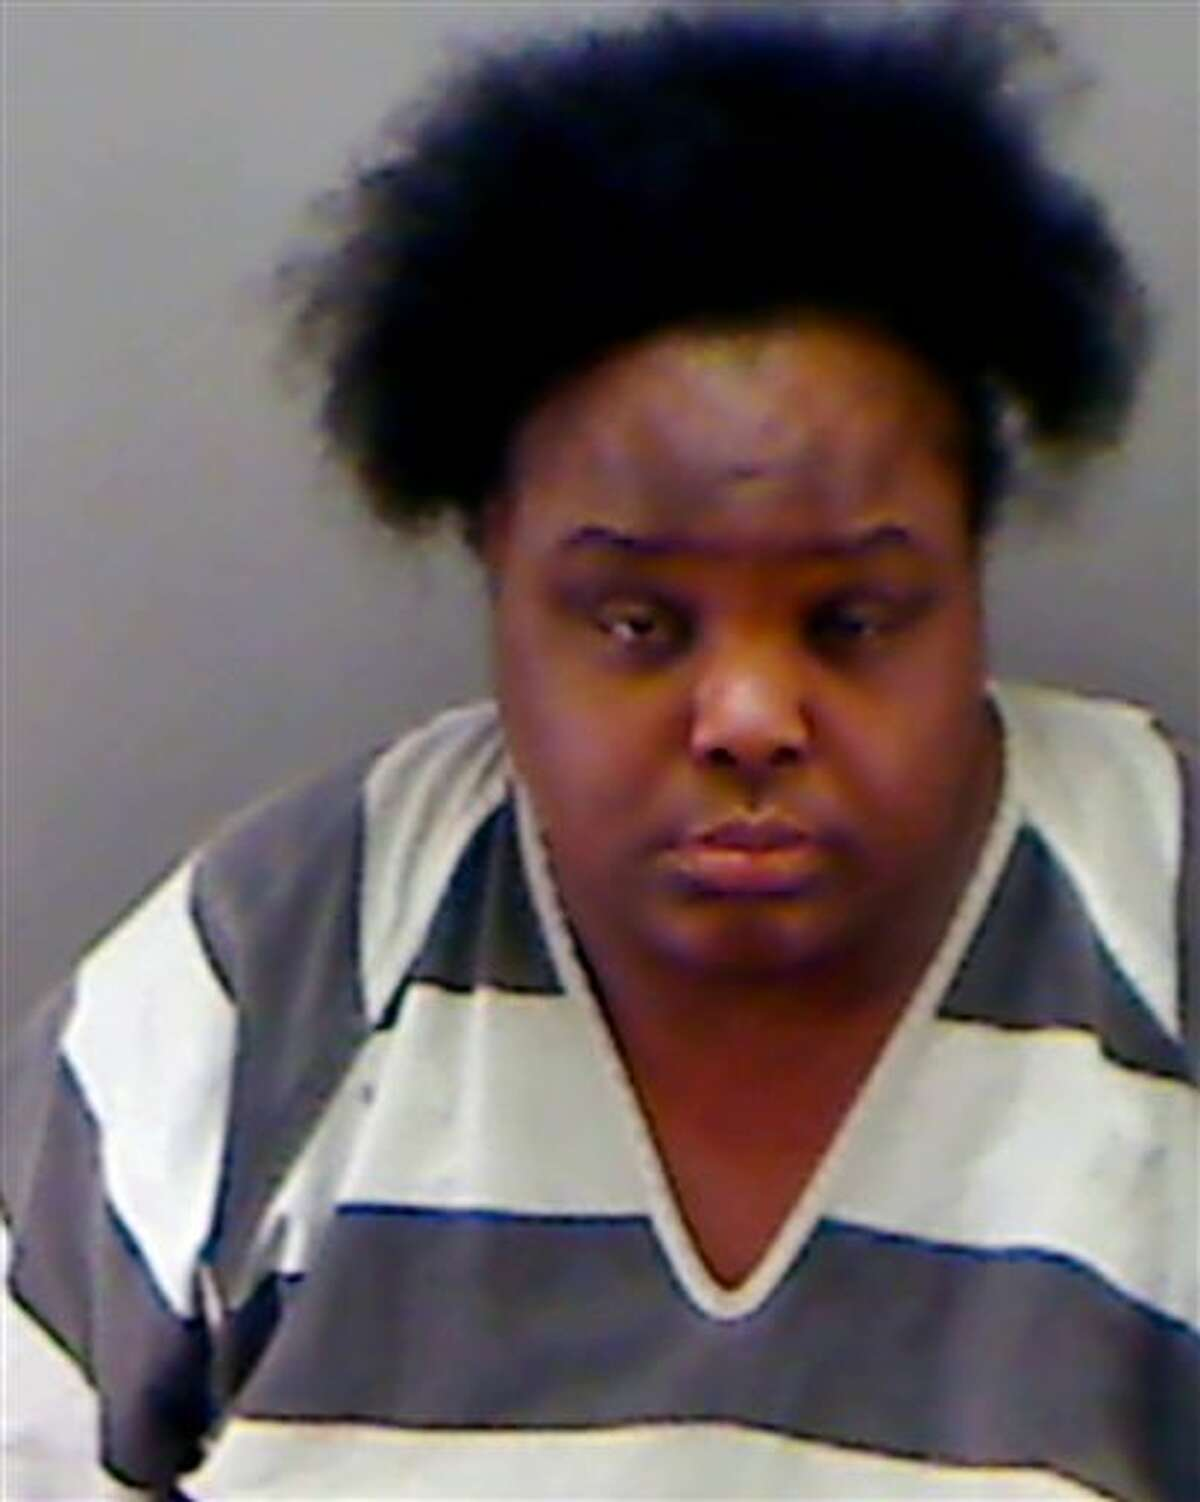 This undated booking photo provided by the Longview Police Department shows Charity Johnson. Authorities say Johnson, 34, posed as a teenager to enroll as a sophomore at a private Texas high school. (AP Photo/Longview Police Department)